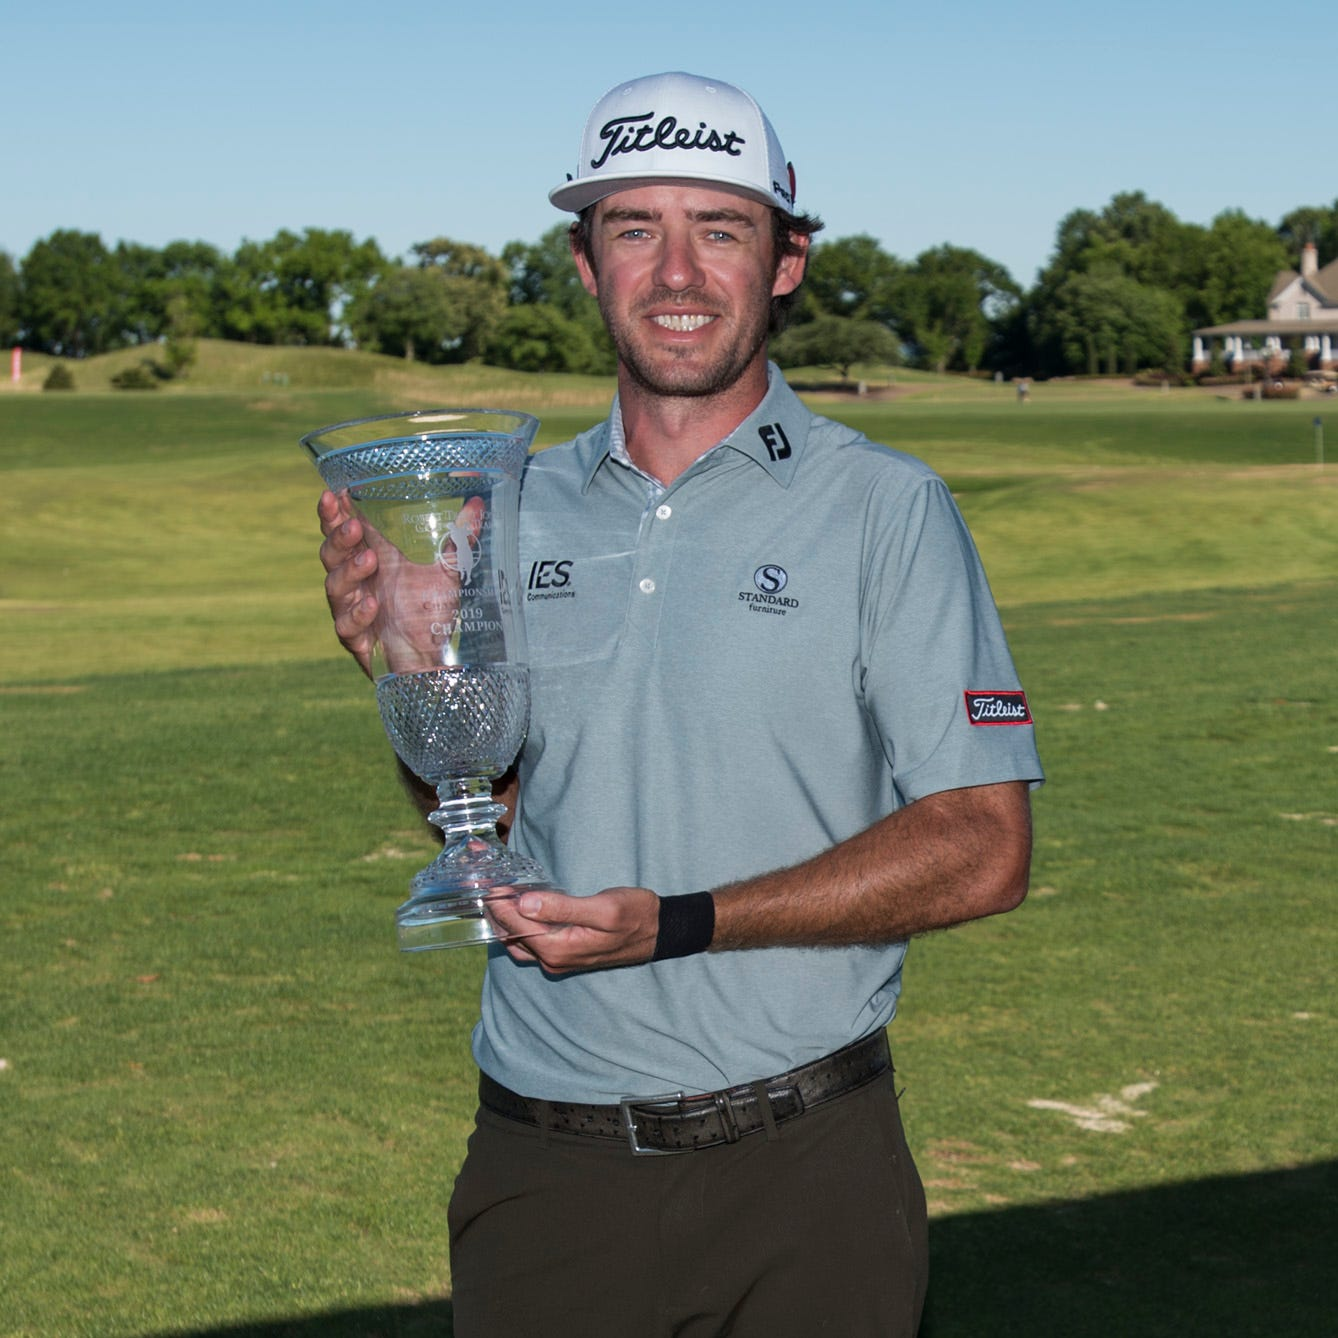 Lanto Griffin wins Web.com Tour RTJ championship over Alabama alum Robby Shelton in playoff